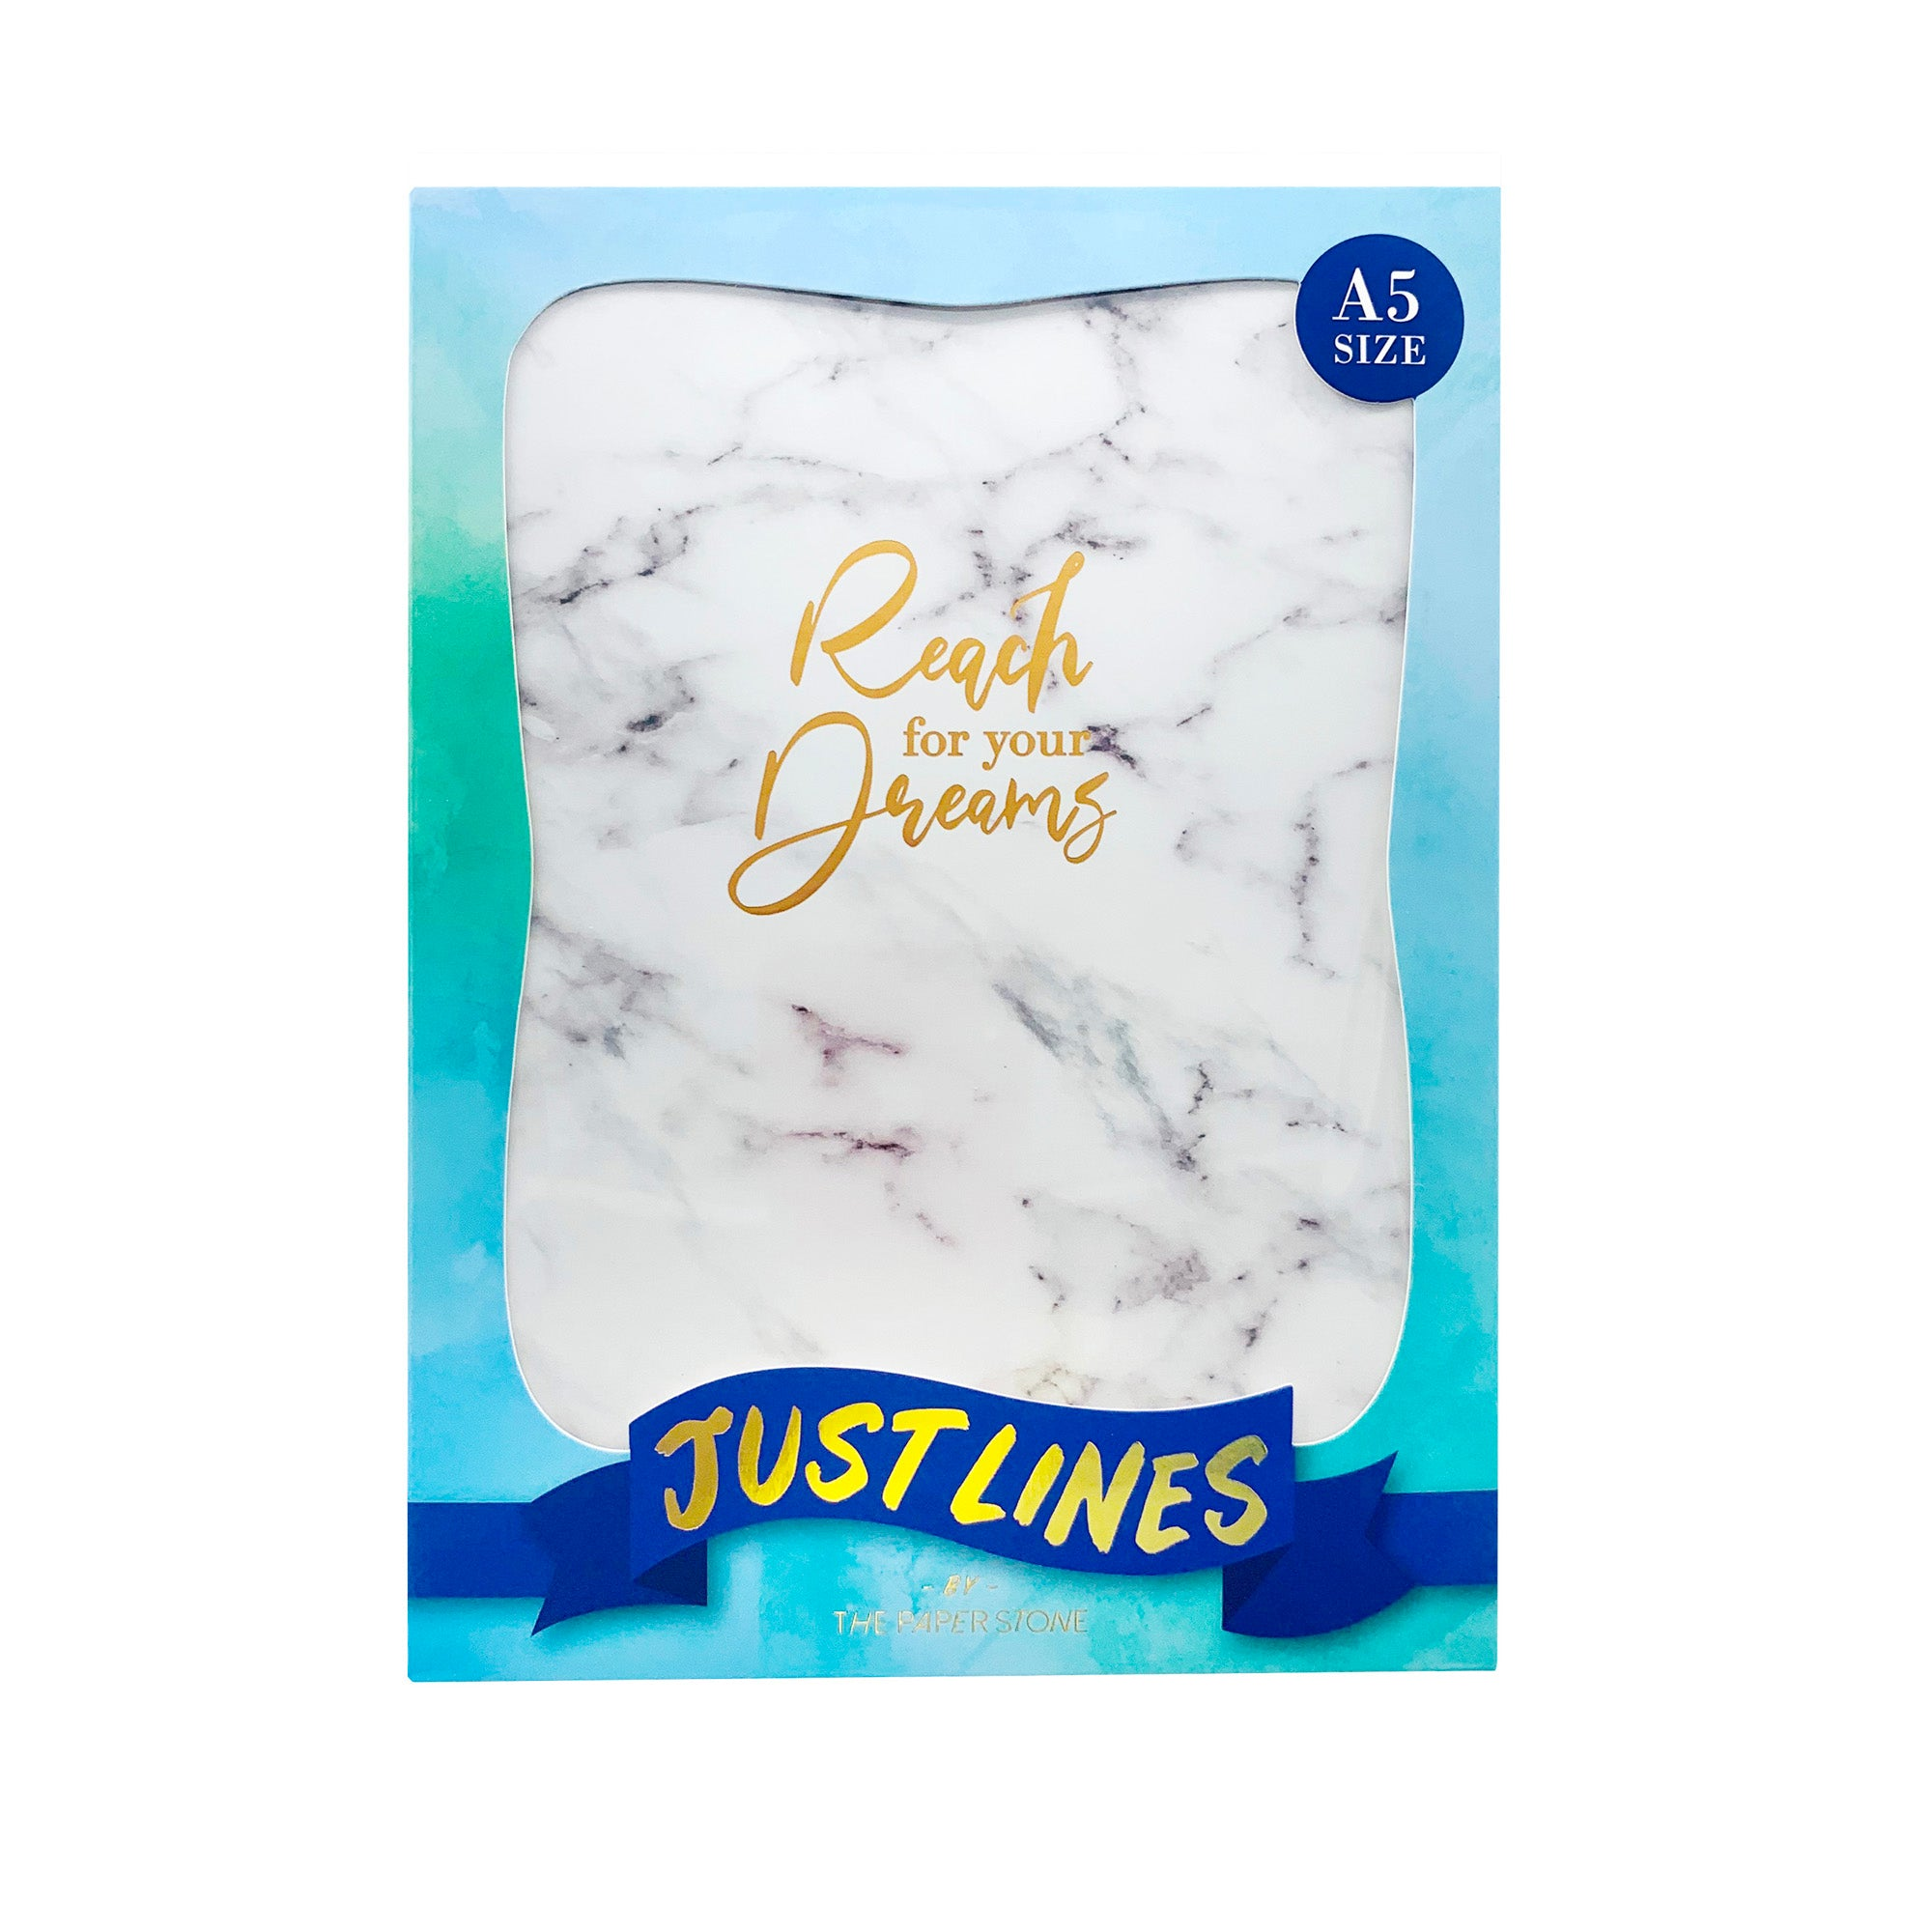 Just Lines - Reach for Dreams Marble